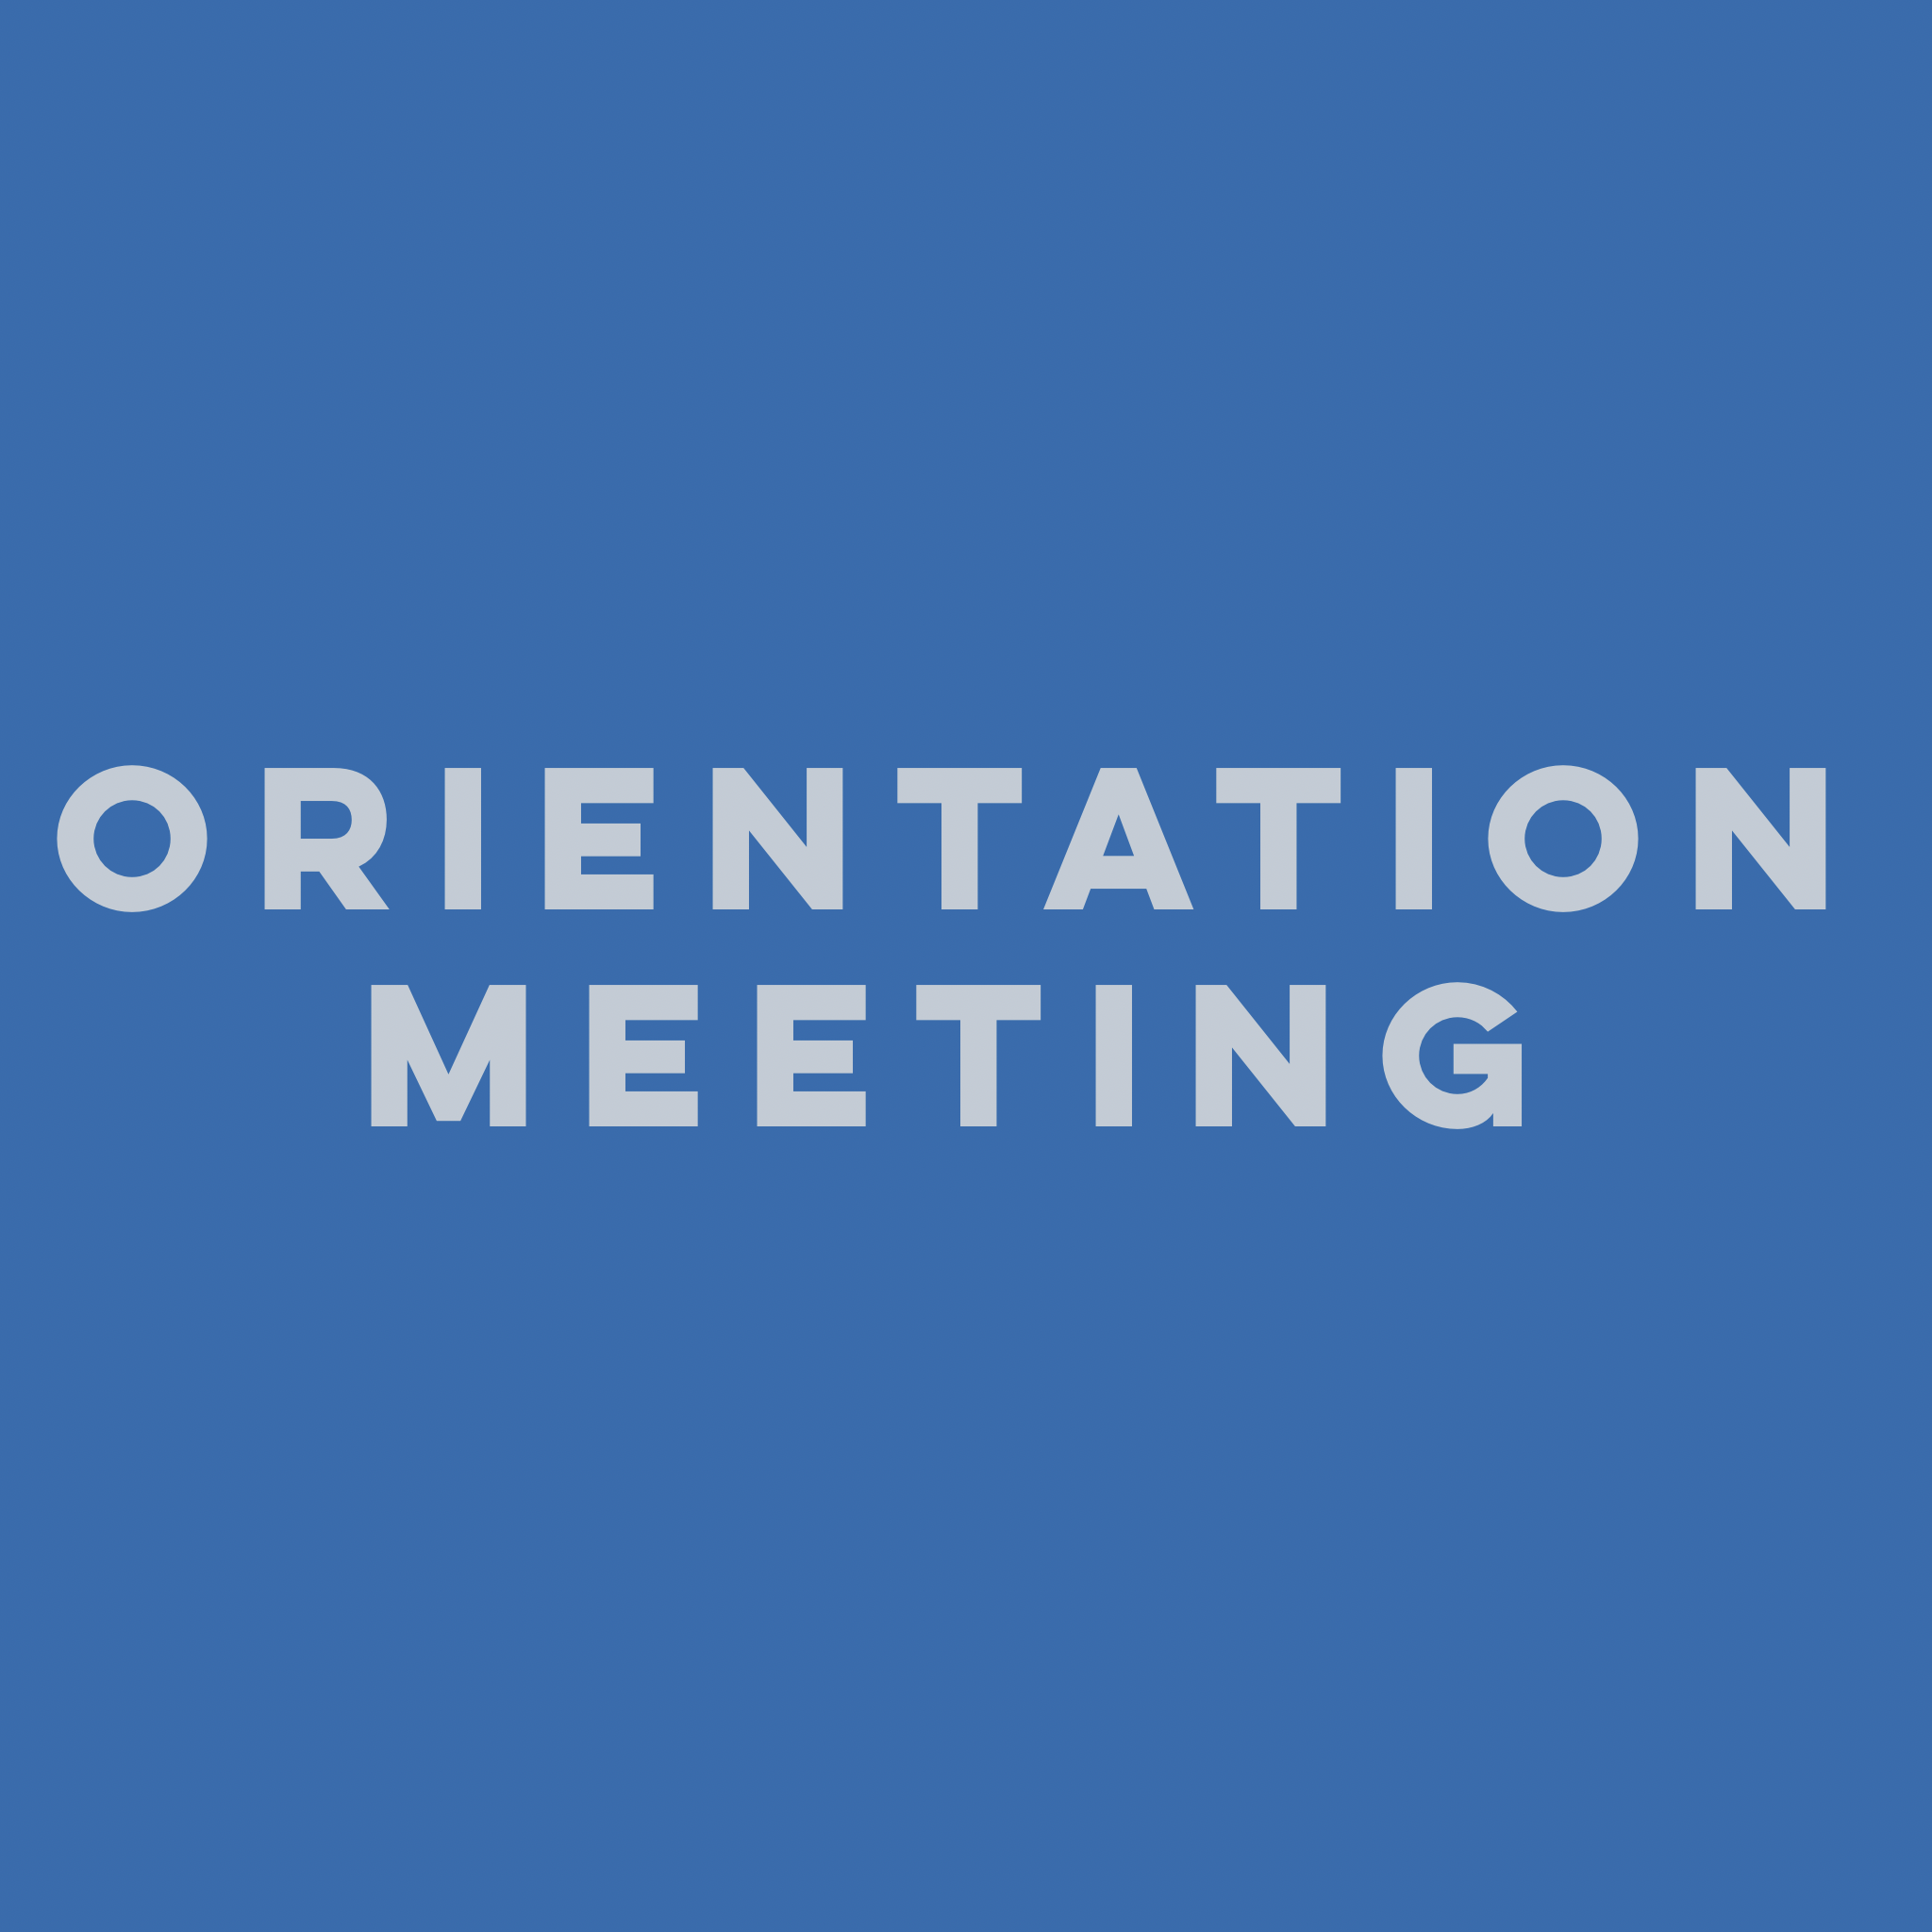 Orientation Meeting